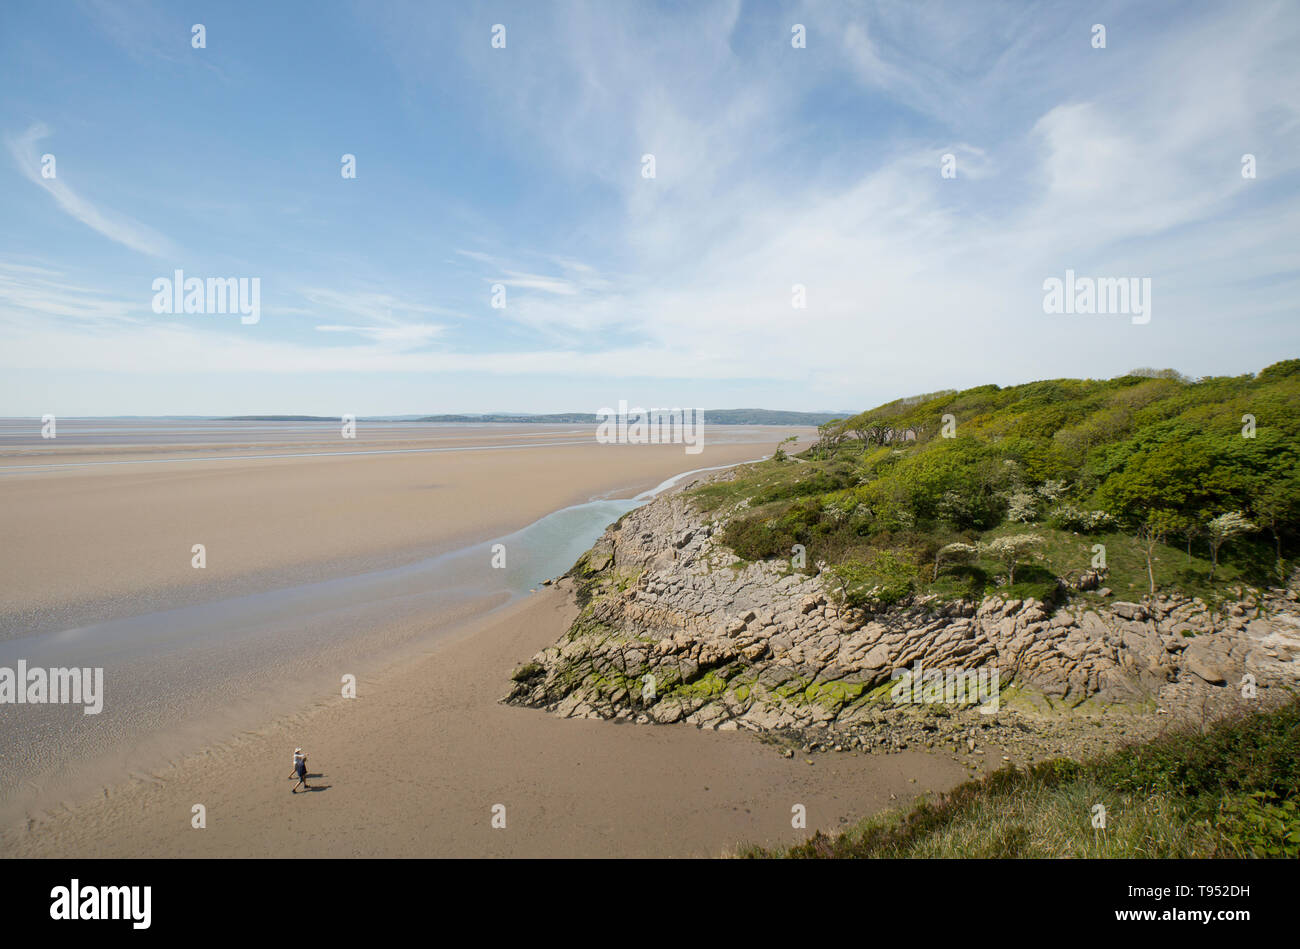 A view of an estuary channel and two people walking close to Jenny Brown's Point at low tide near the village of Silverdale close to the edge of Morec - Stock Image